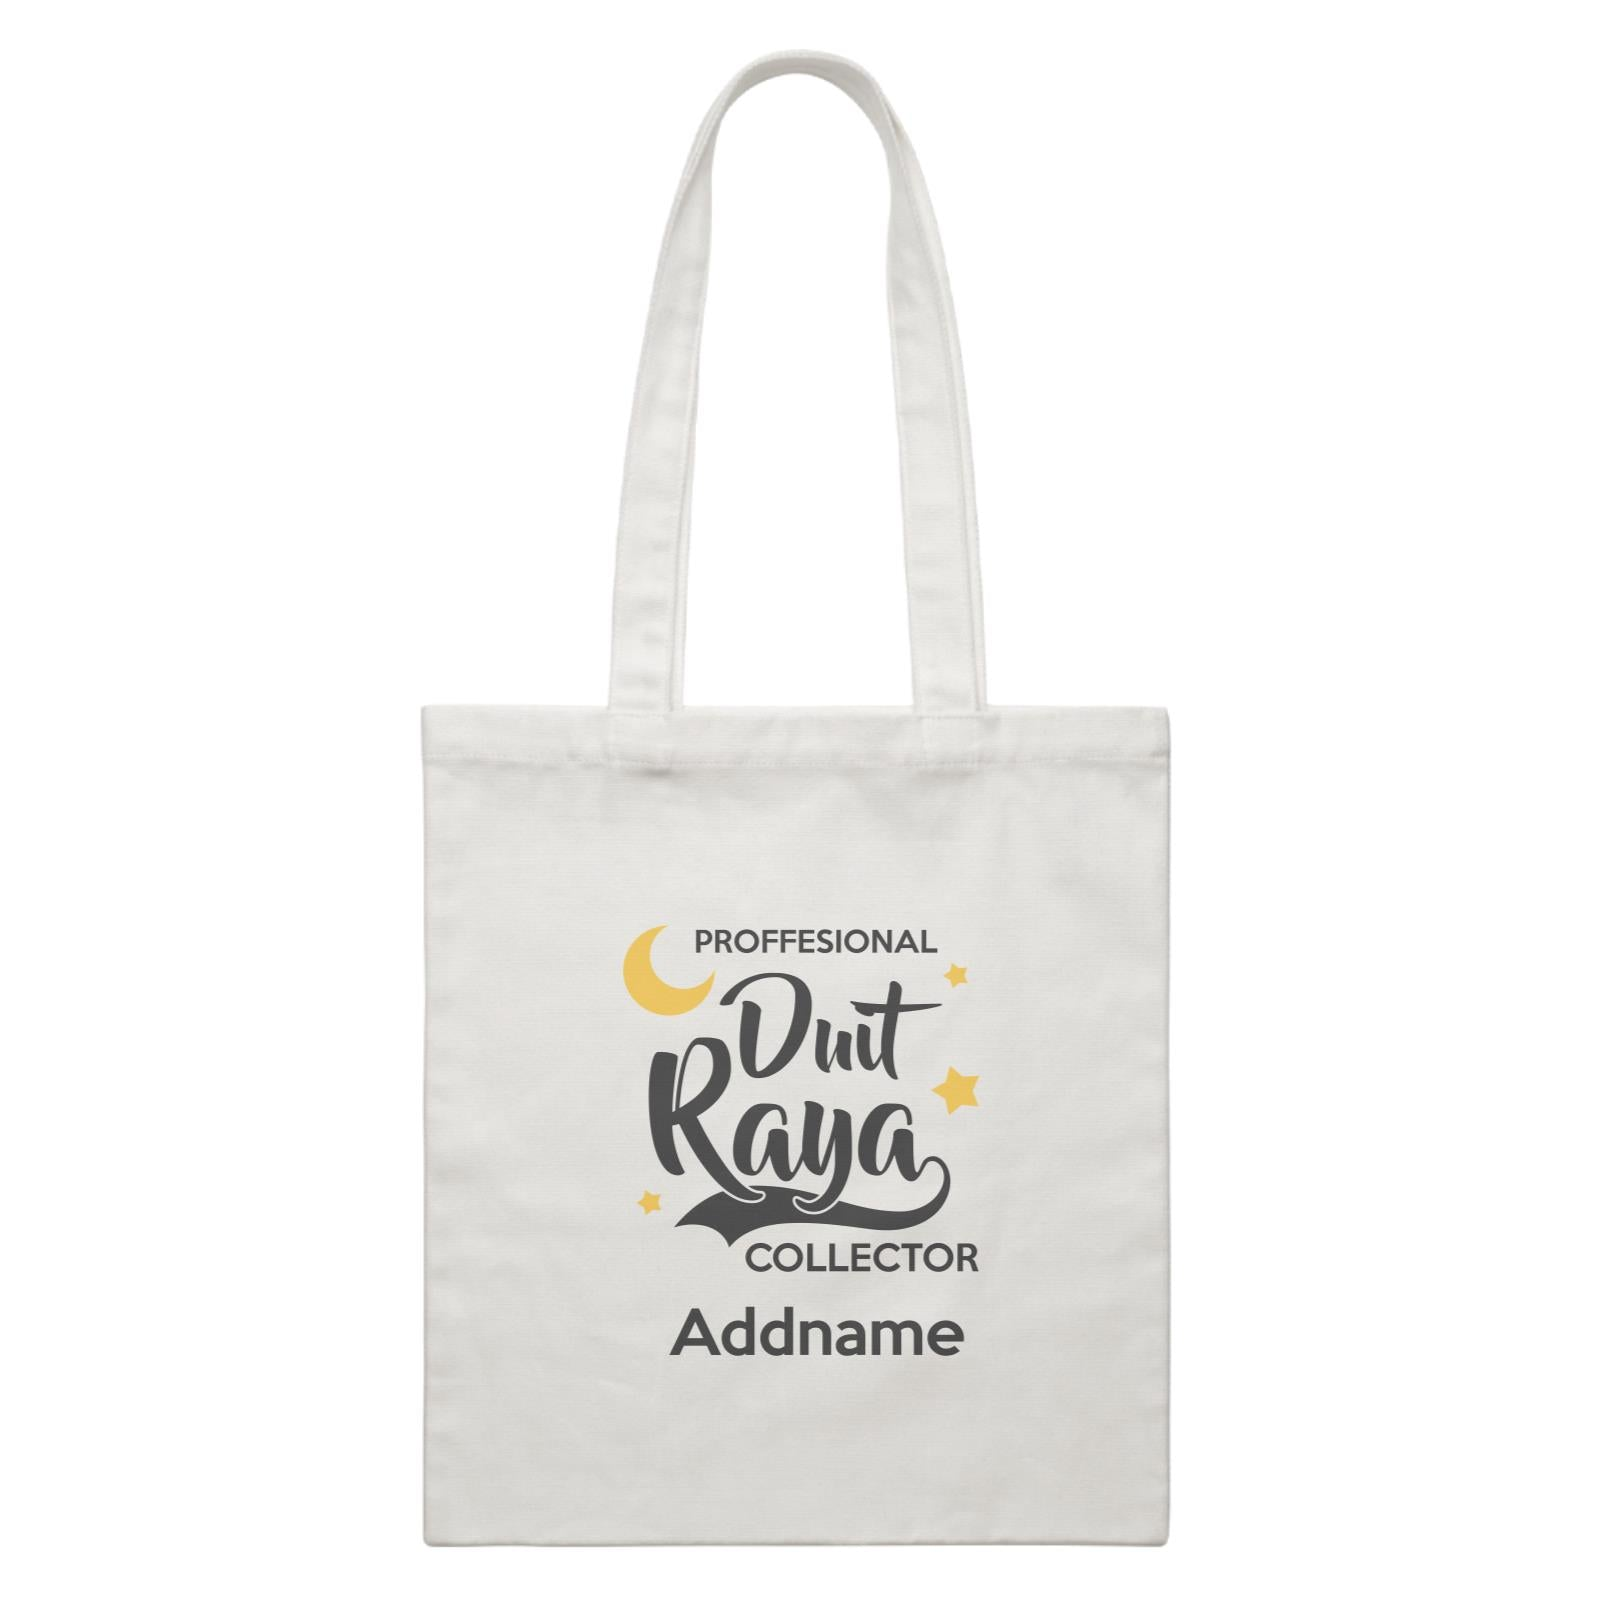 Raya Typography Professional Duit Raya Collector Addname White Canvas Bag